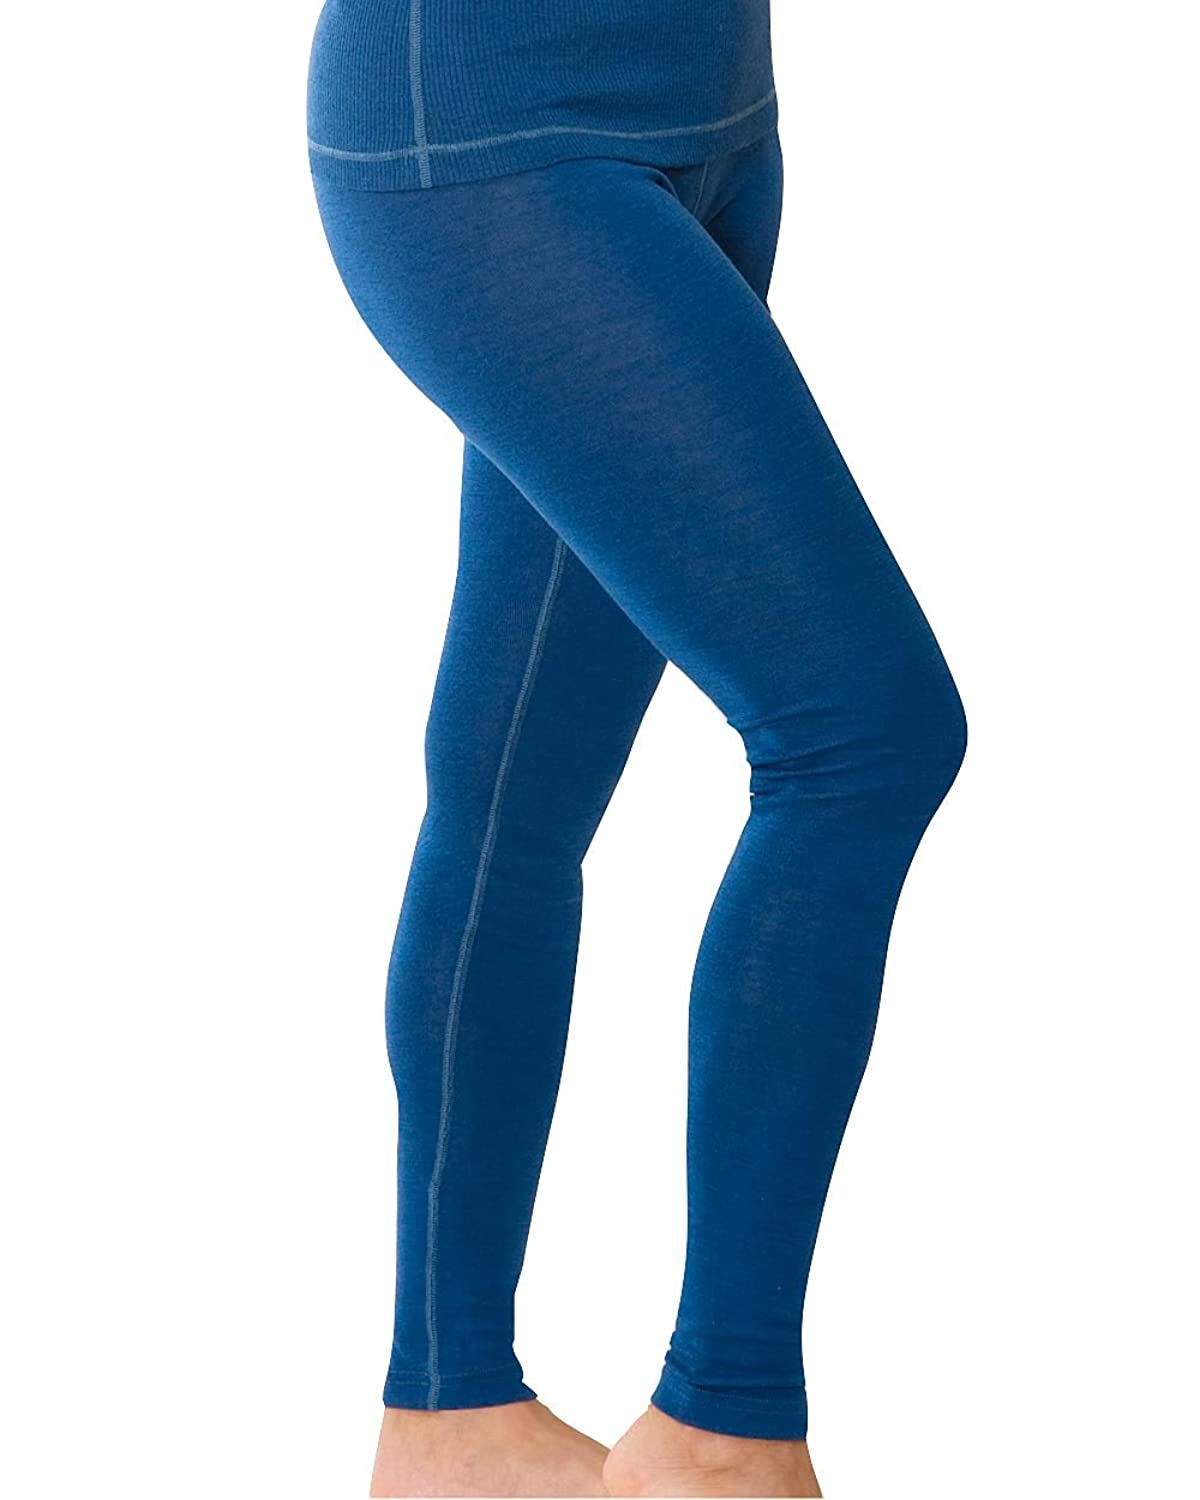 Damen Leggings Sport, Wolle Seide, Gr. 34/36 - 46/48